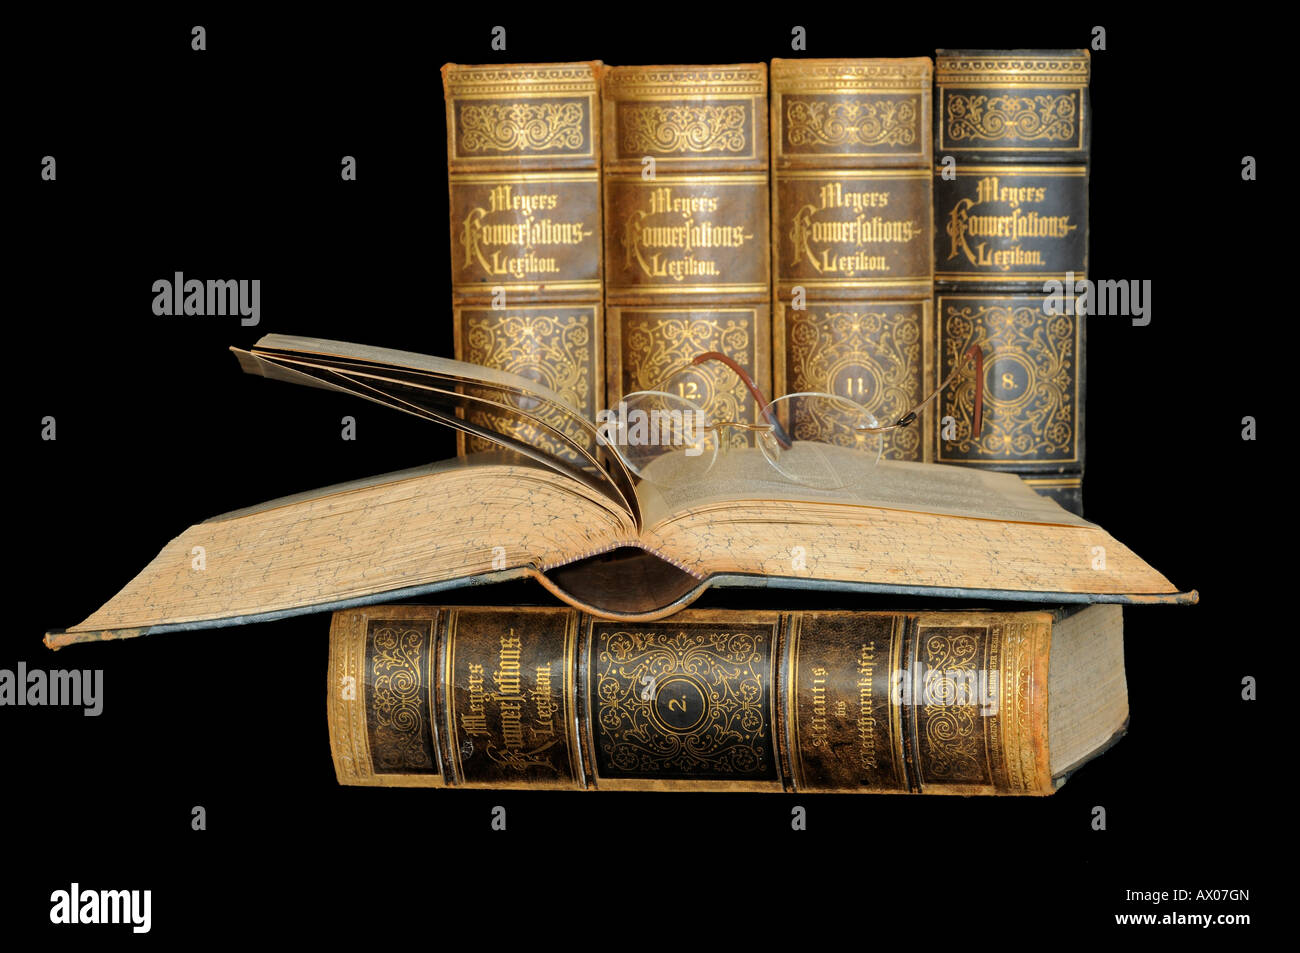 A stack of old Encyclopedia - Stock Image